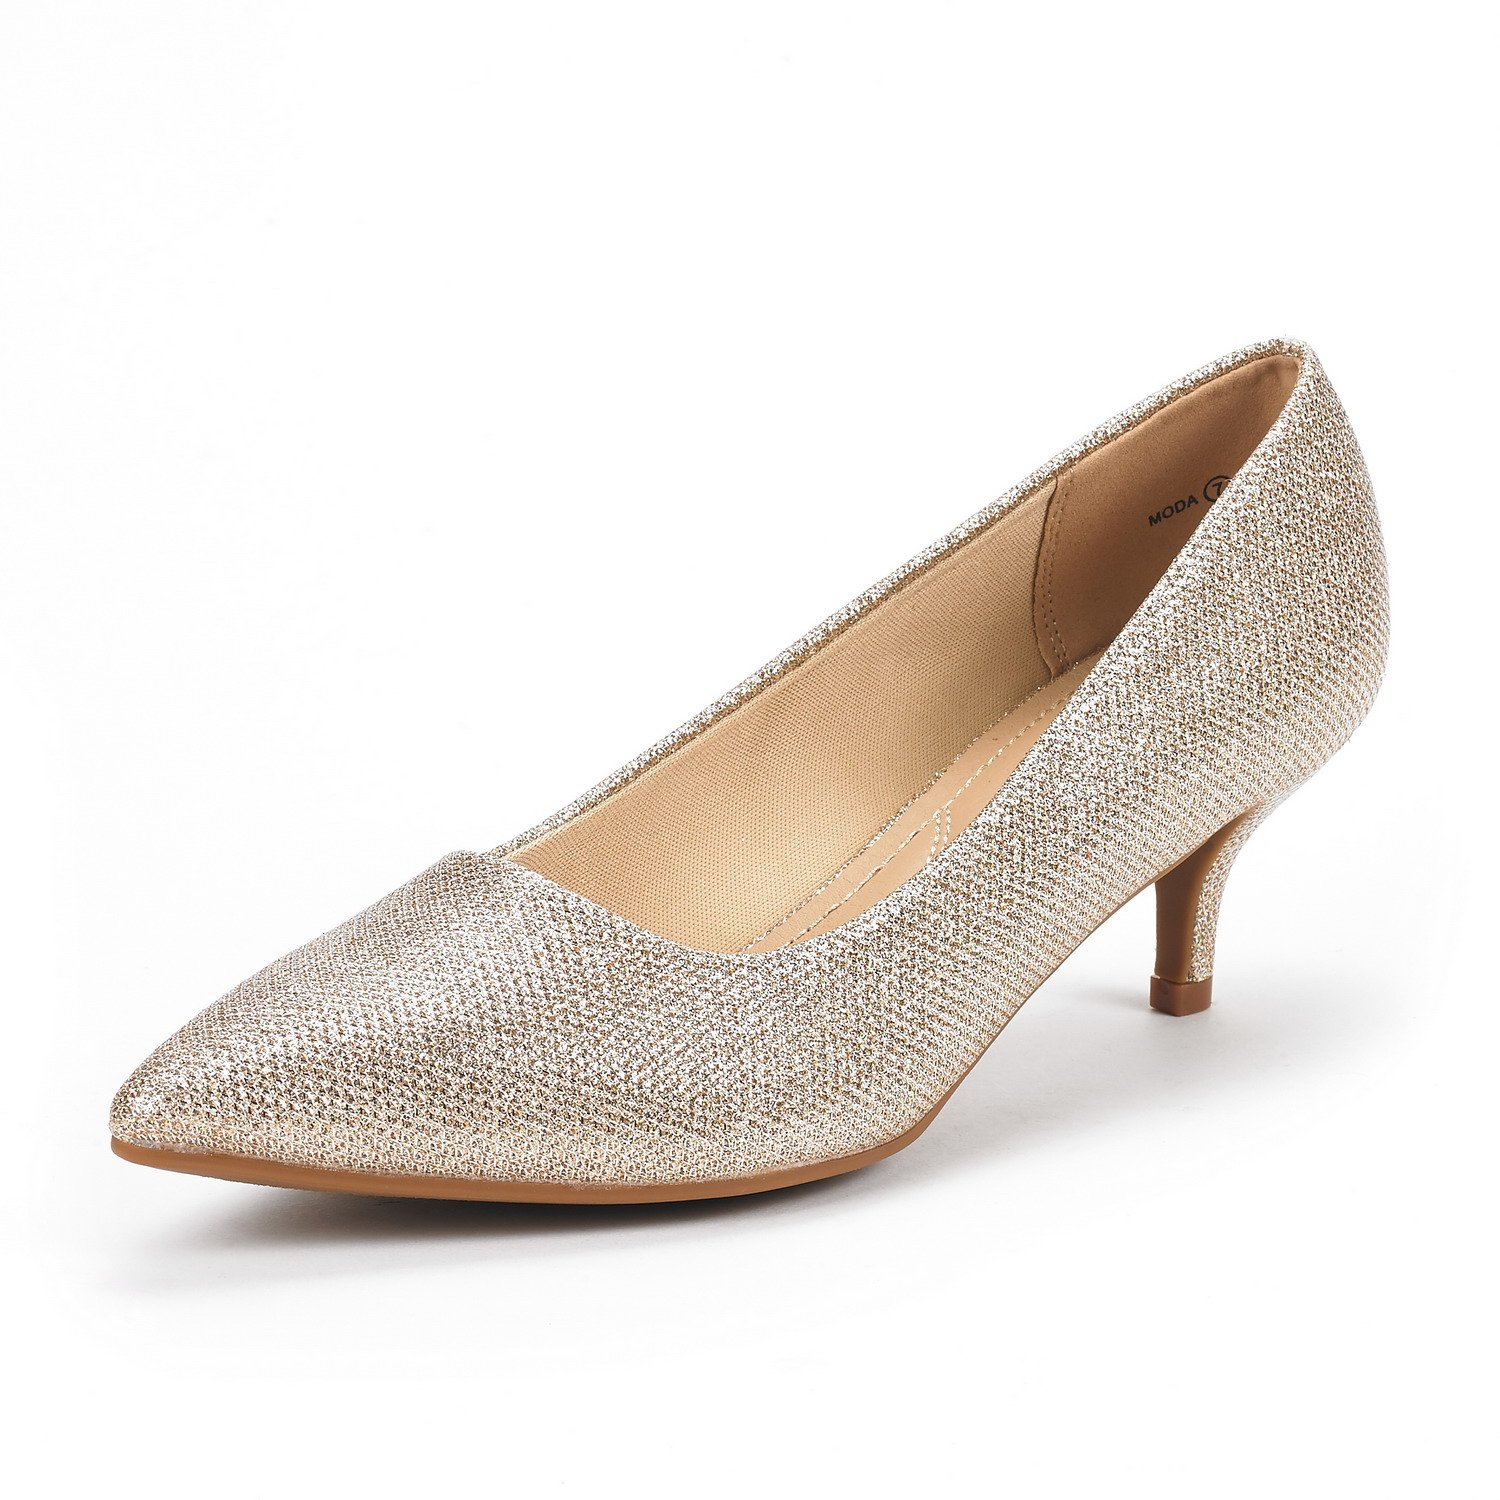 fb30b073a8e94 DREAM PAIRS Women's Moda Low Heel D'Orsay Pointed Toe Pump Shoes